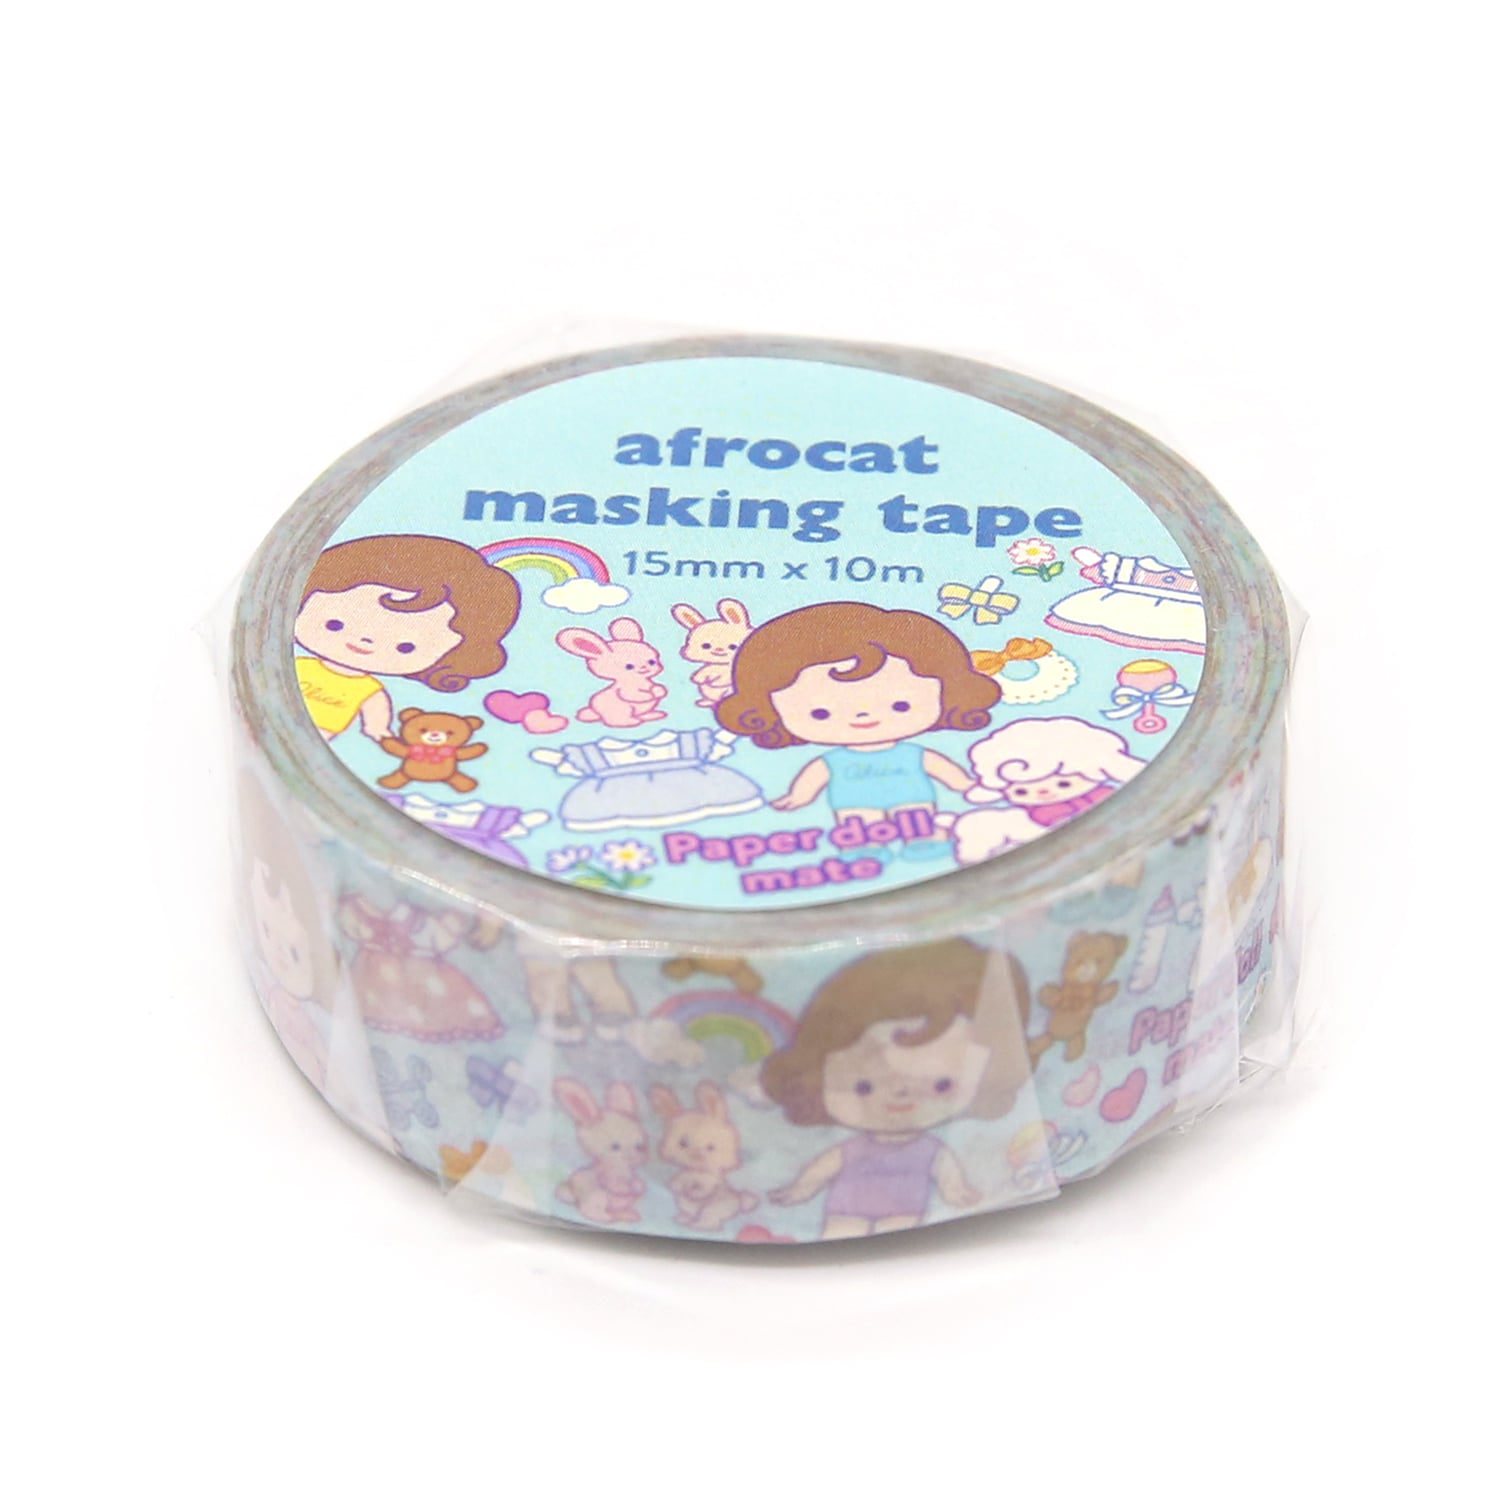 [afrocat masking tape] 16. Paper doll mate_minime alice 15mm